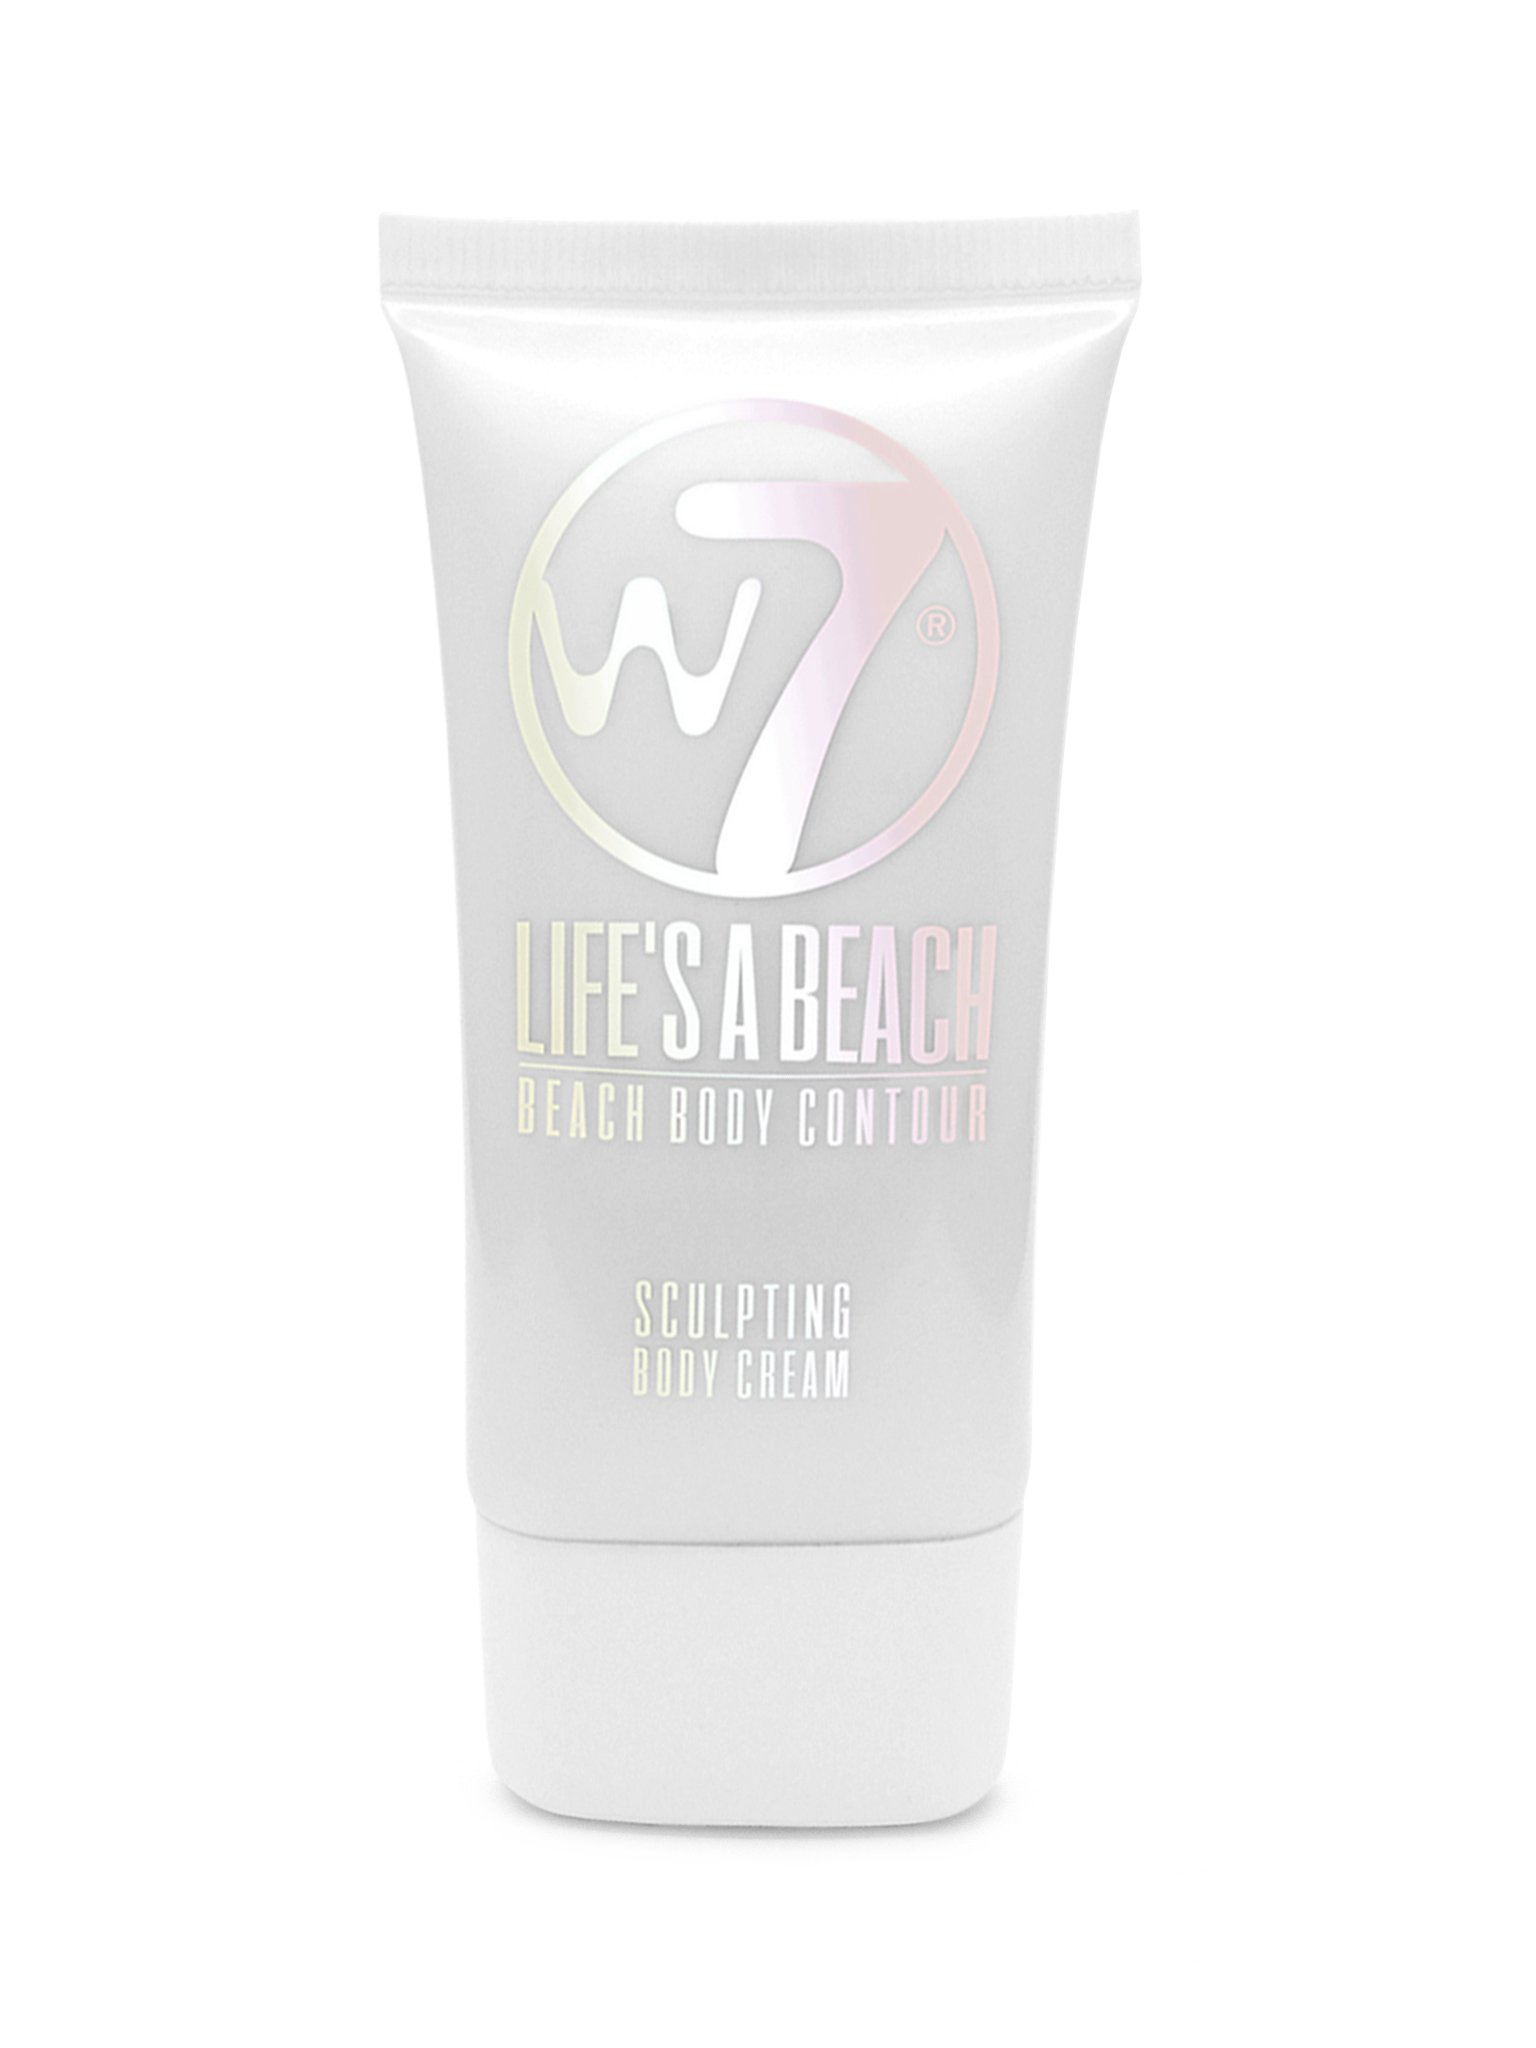 W7 Life's a Beach Body Sculpting Cream - Party Princess Pearl